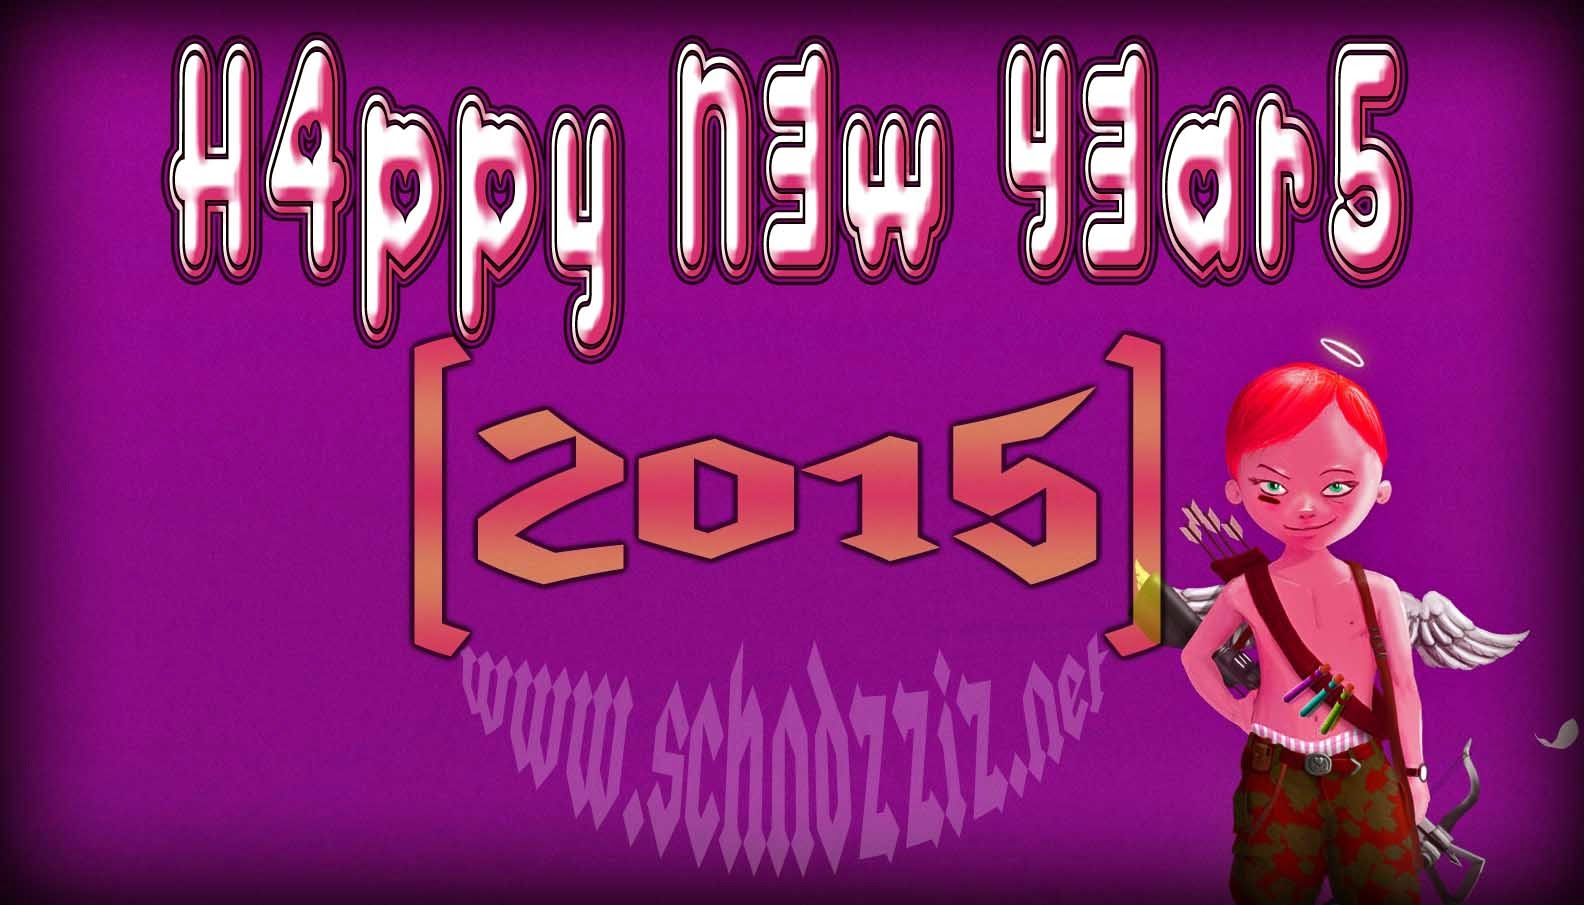 Gambar Kata-Kata Ucapan Romantis Happy New Years 2015